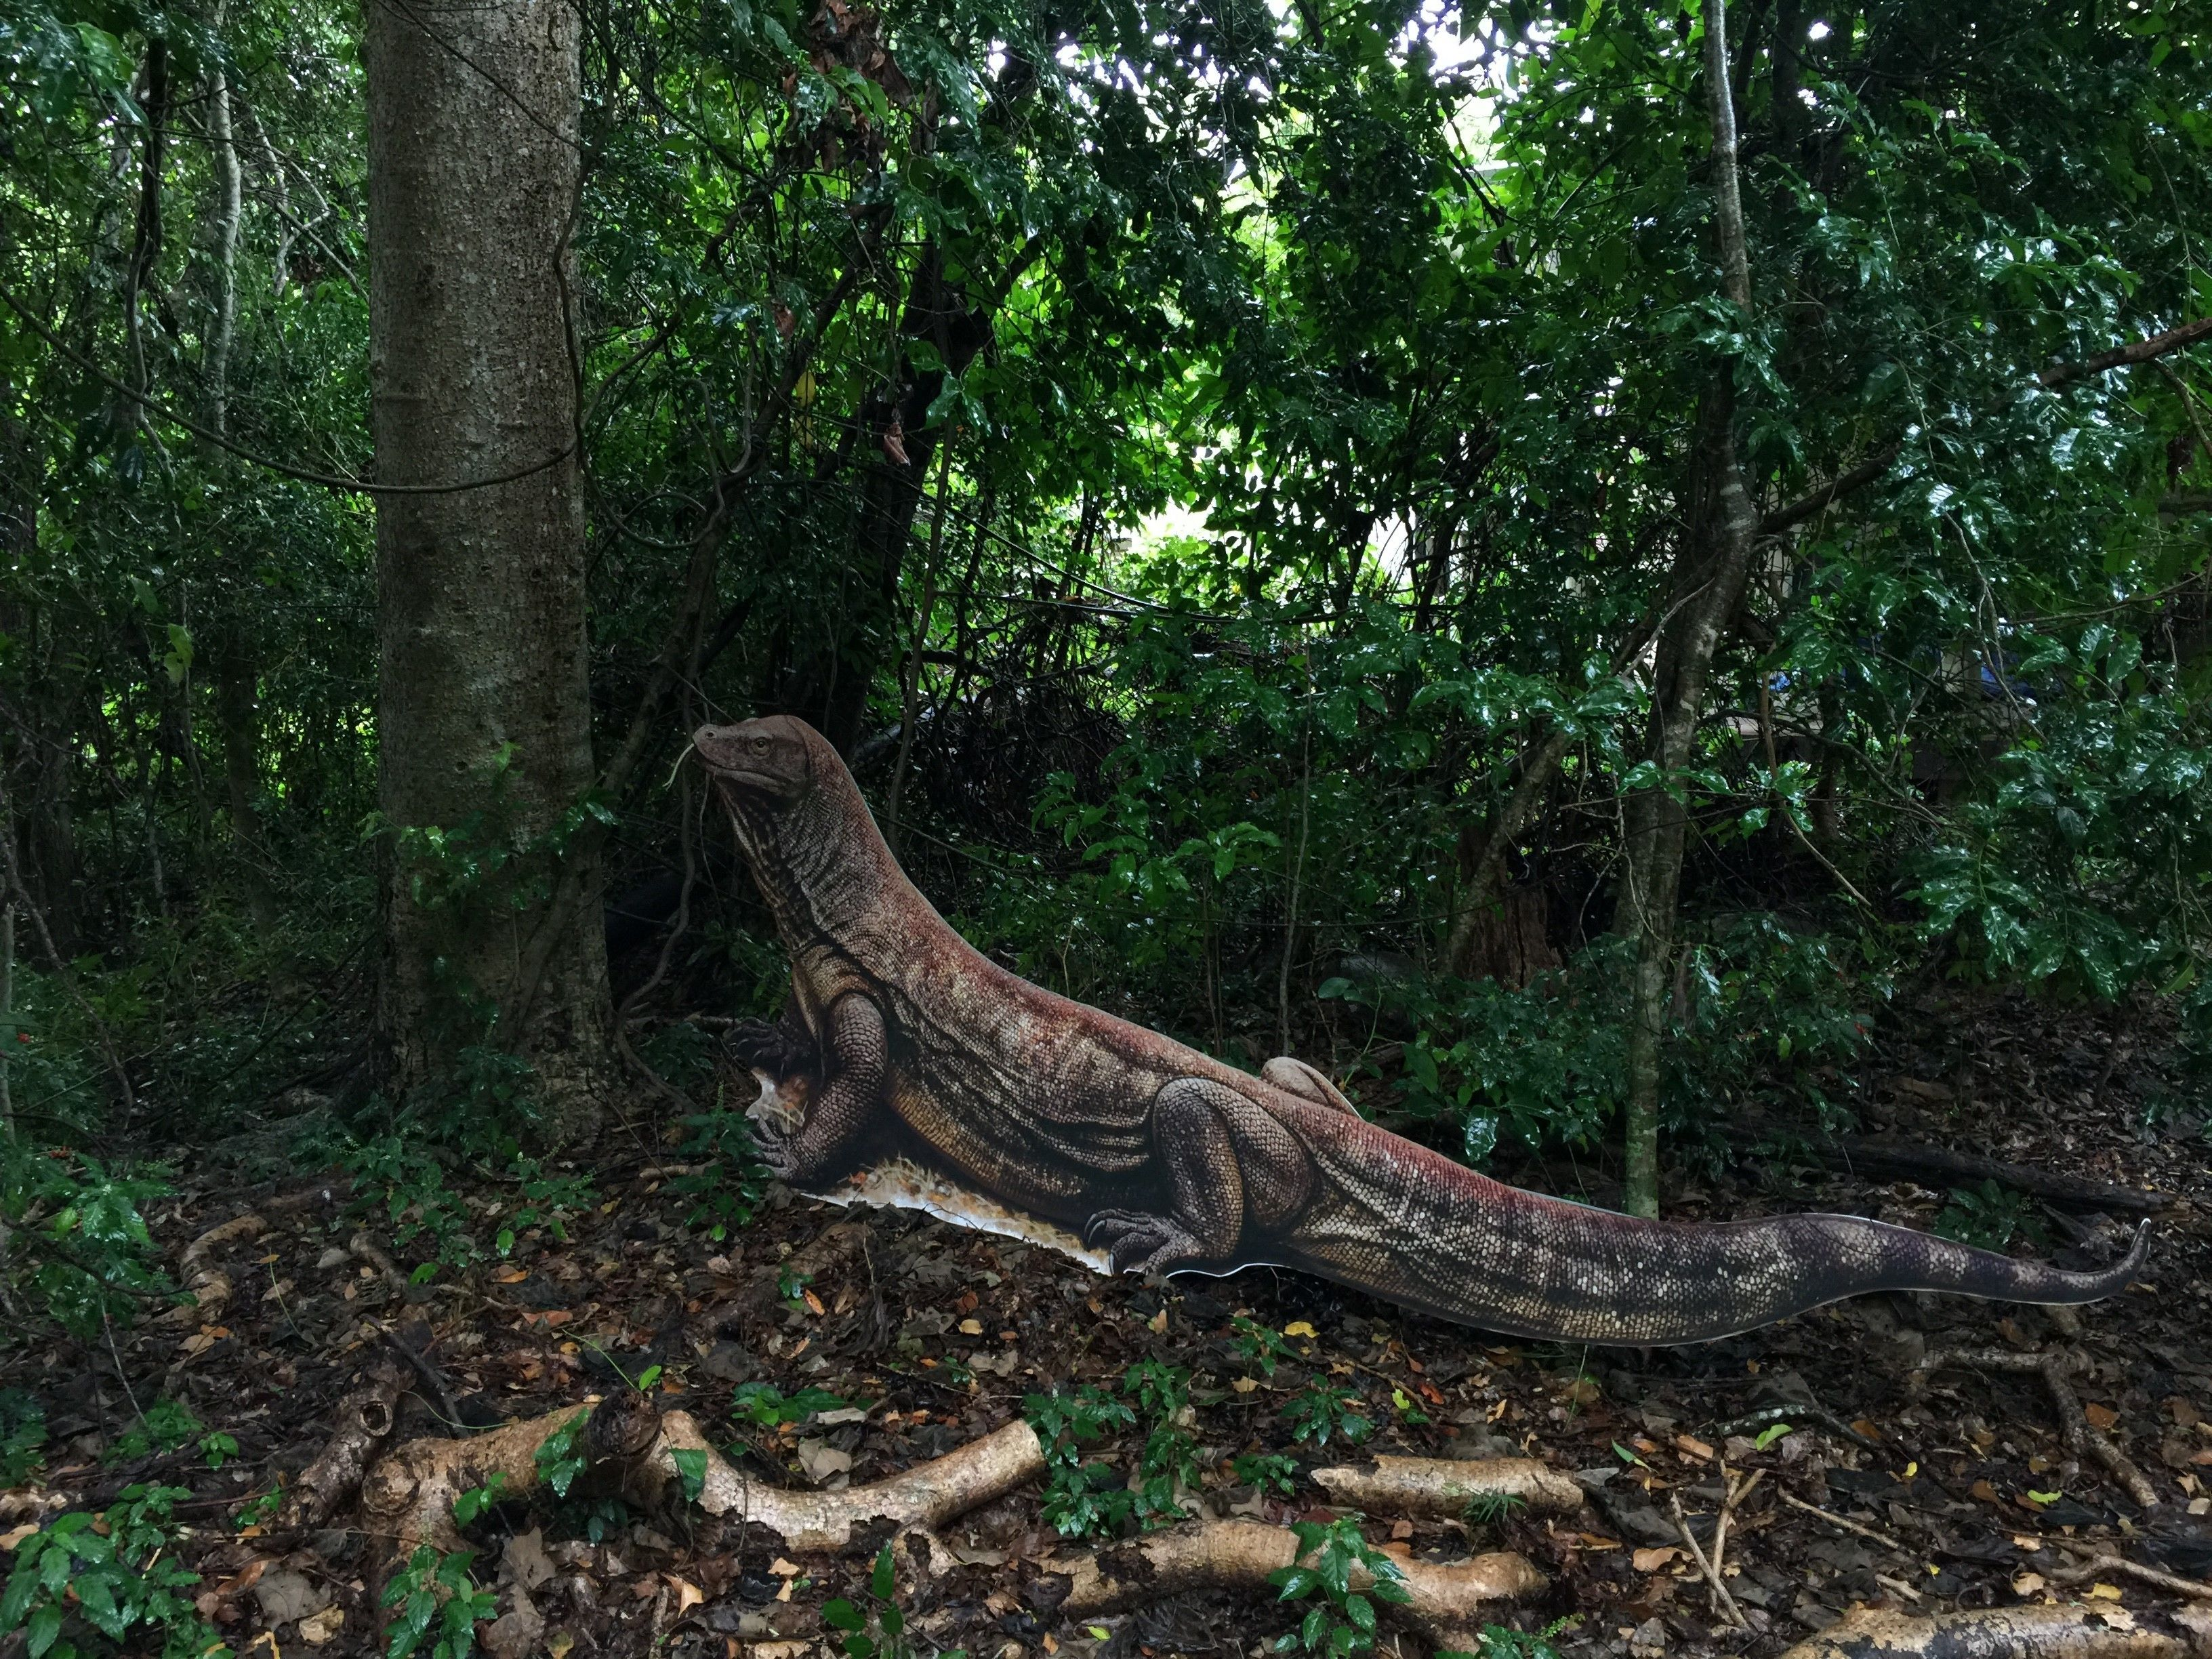 Cardboard cutout of a Komodo dragon in the woods in Australia